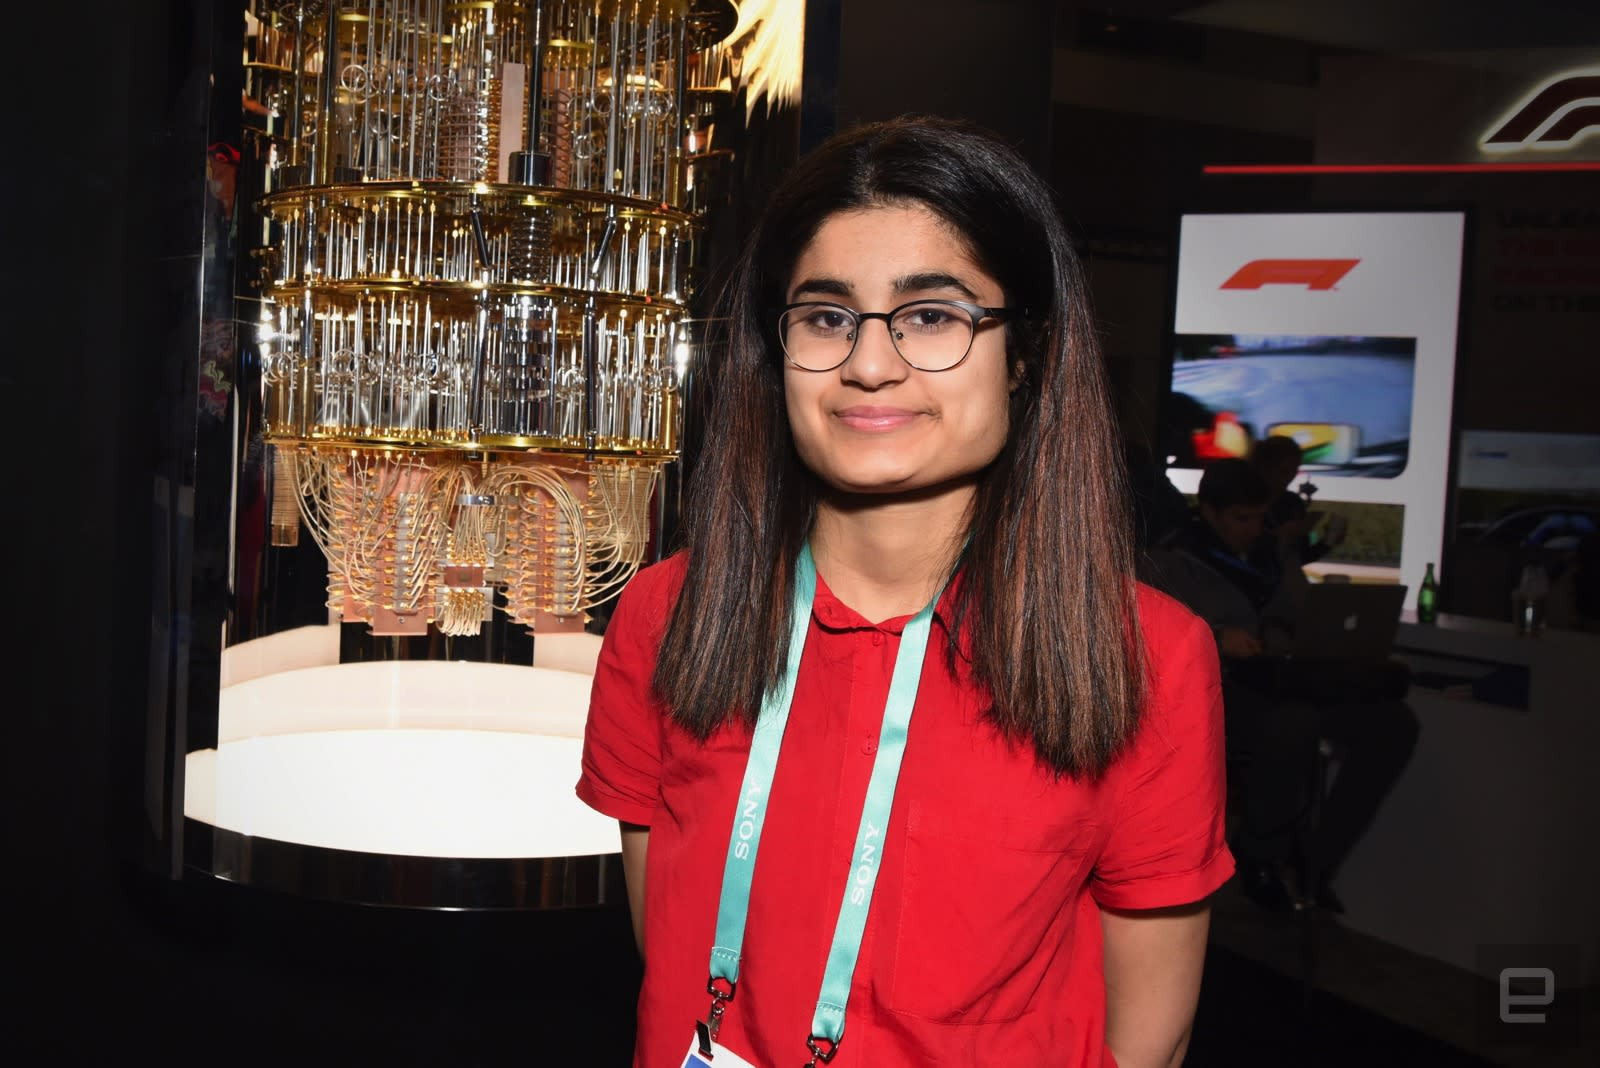 The teenager that's at CES to network